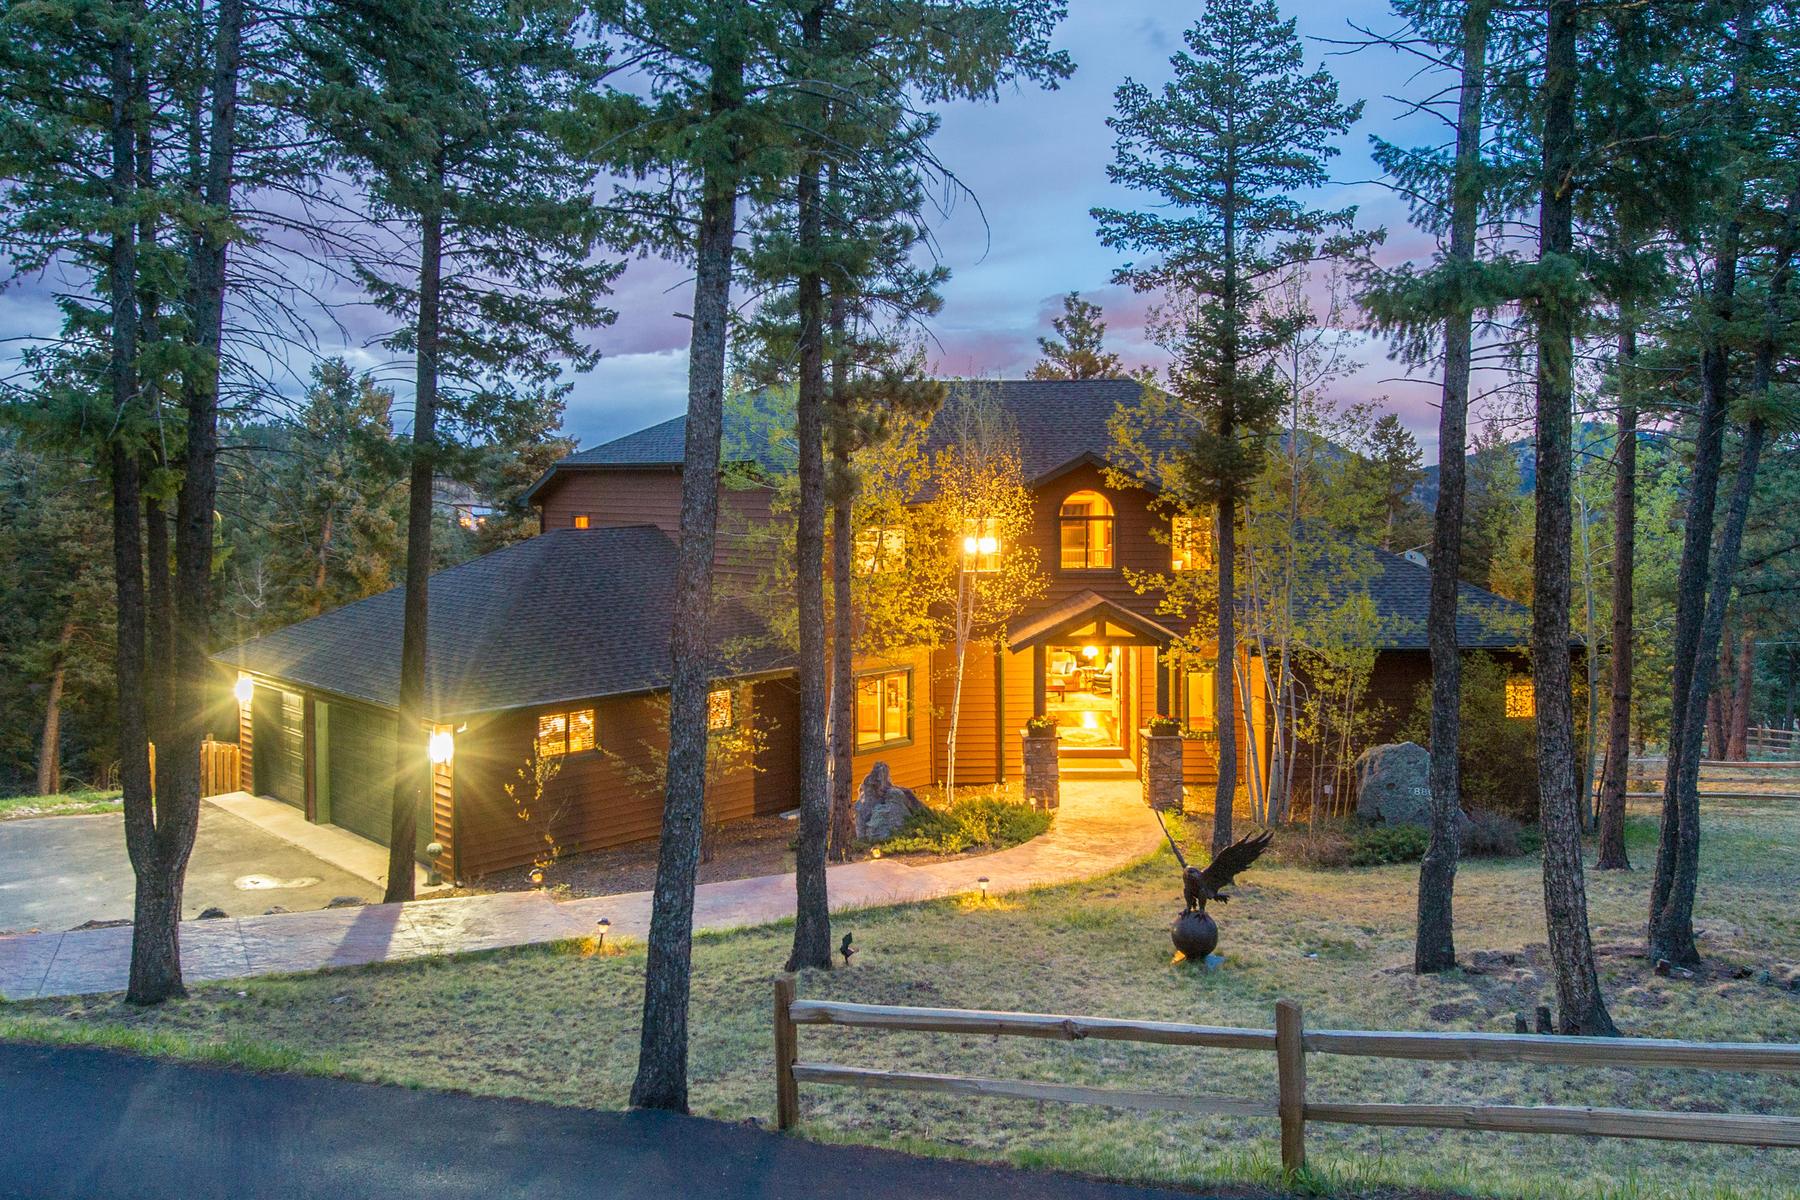 Single Family Home for Sale at Executive Custom Home Set Among the Towering Pines with Privacy 7880 South Homesteader Drive, Morrison, Colorado, 80465 United States